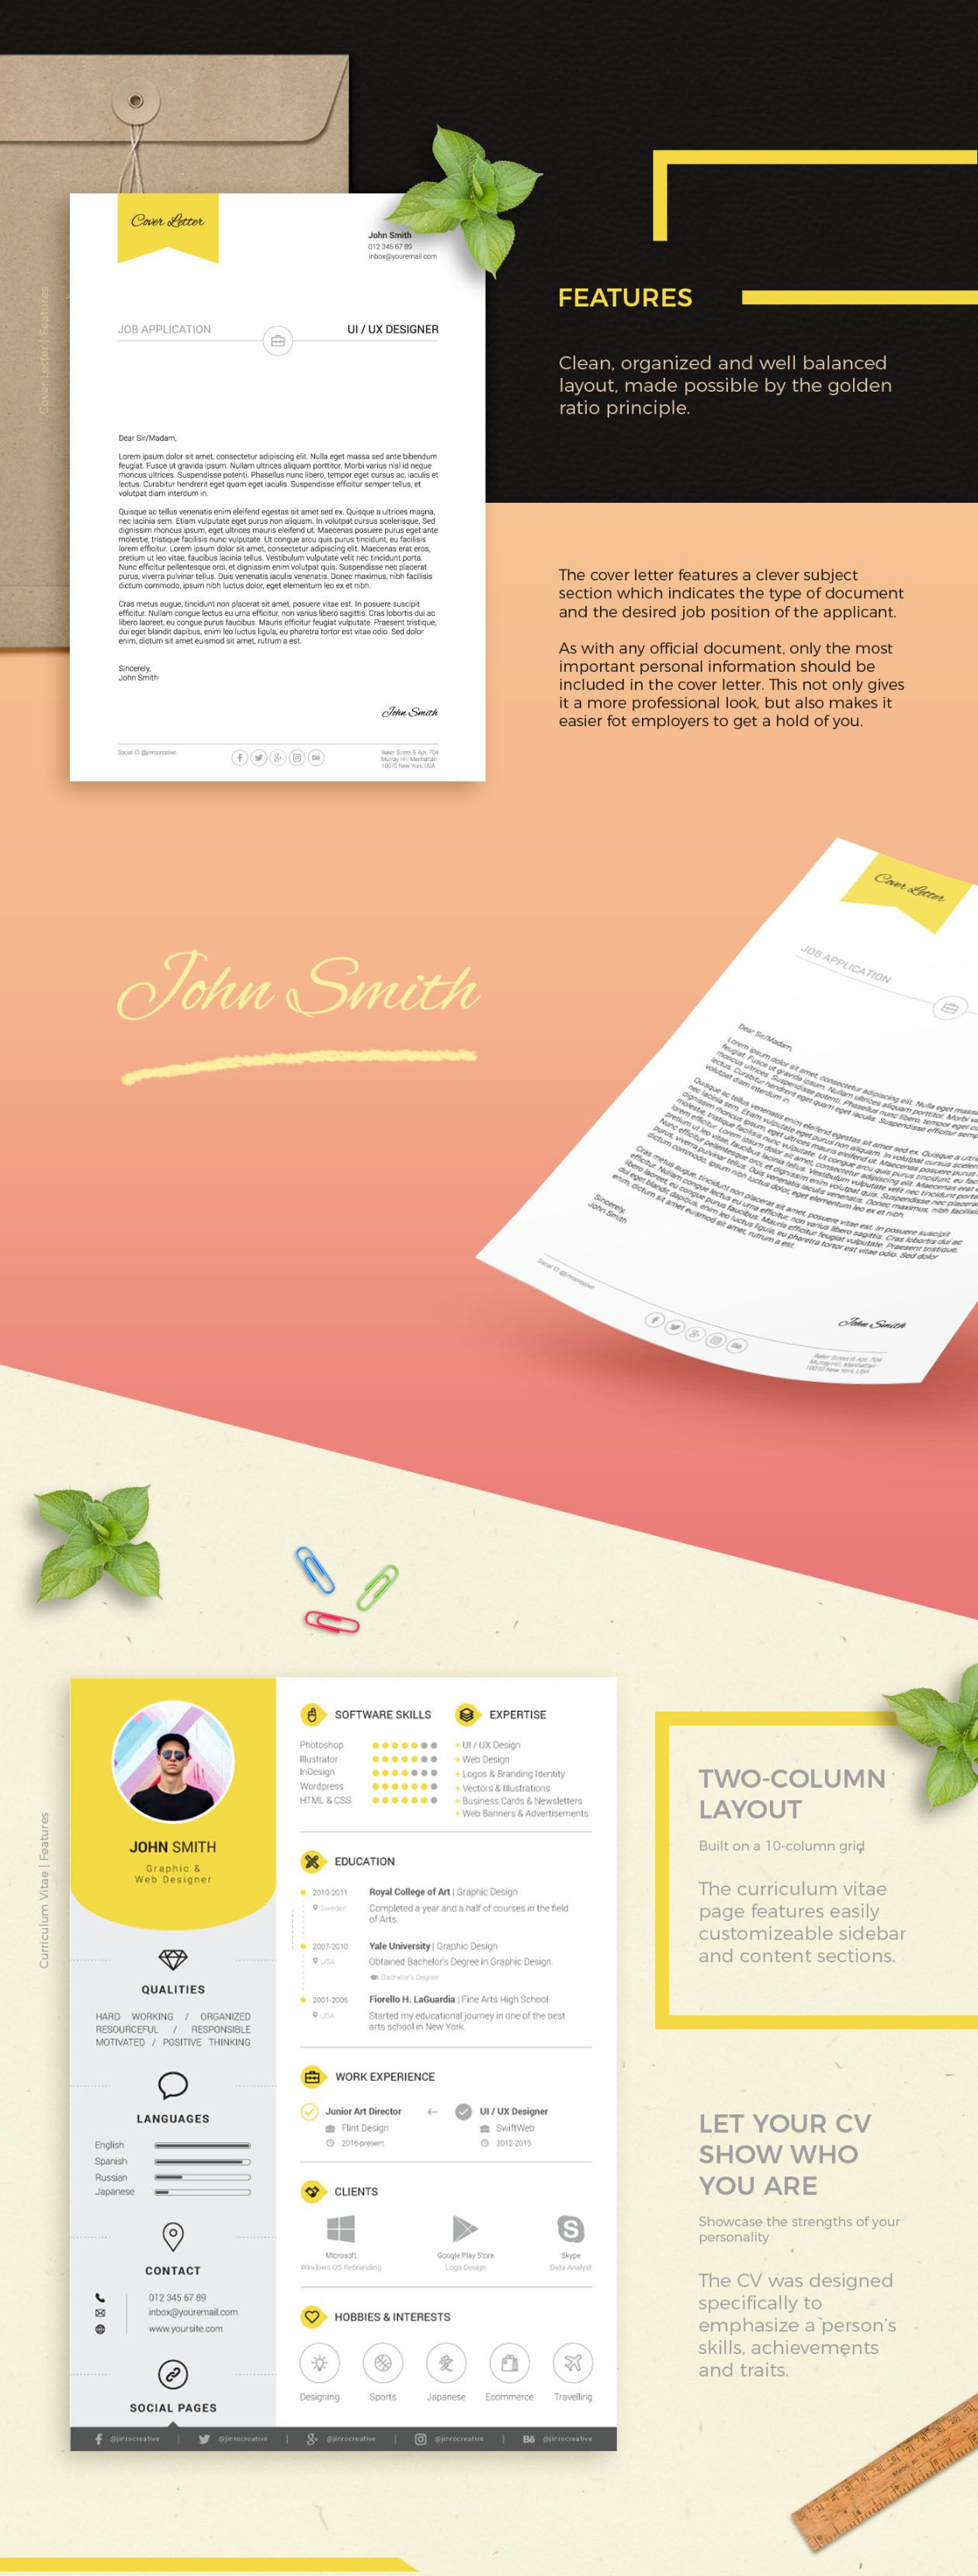 Free Resume Template Via Stefan Mihaylov Graphicpear  Design